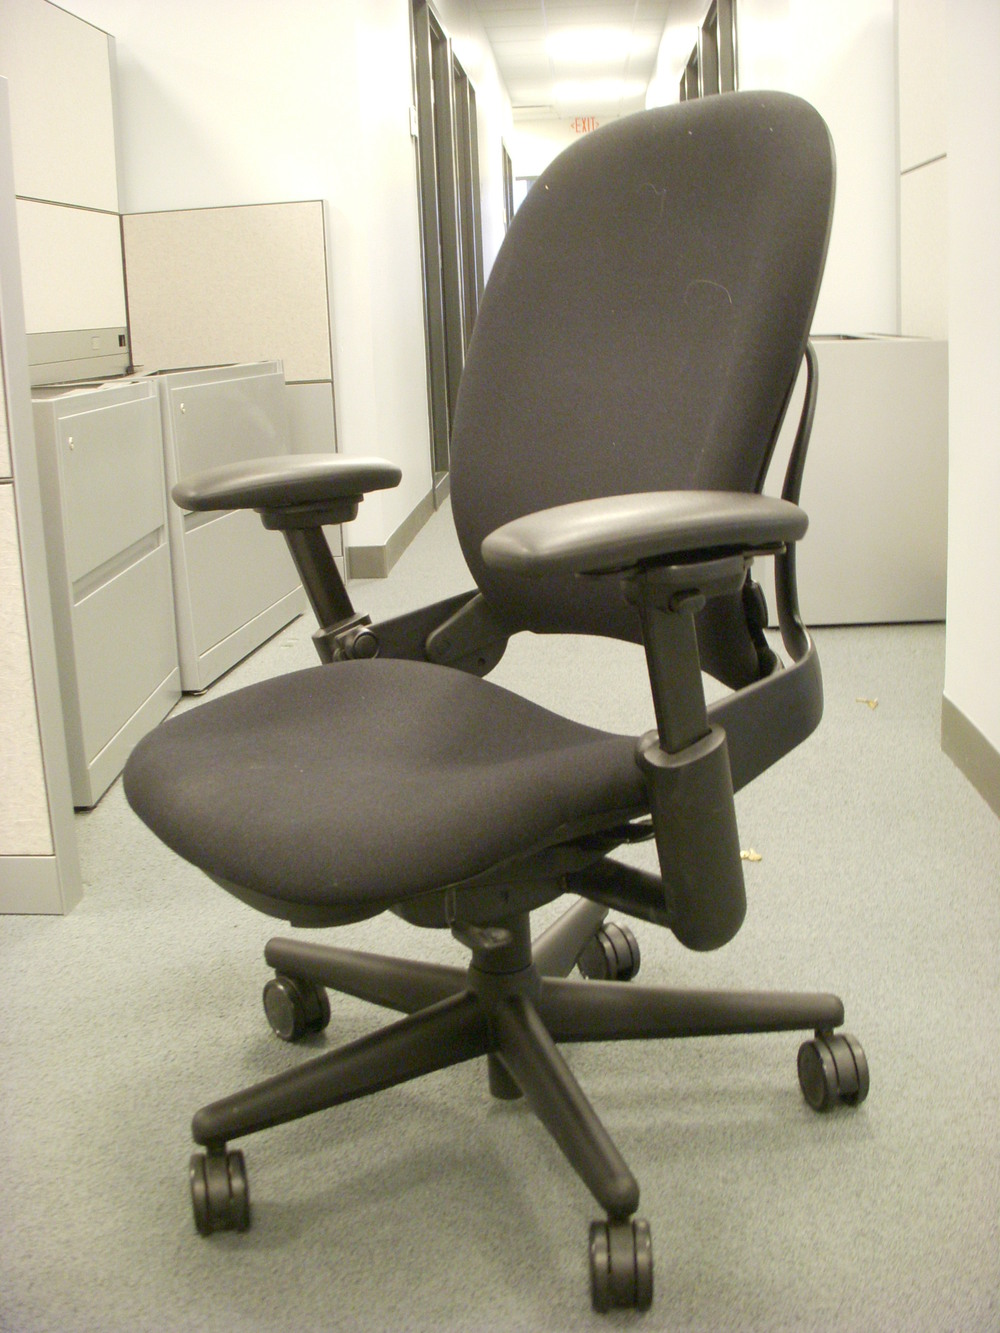 Steelcase  V1  leap chairs in Black.